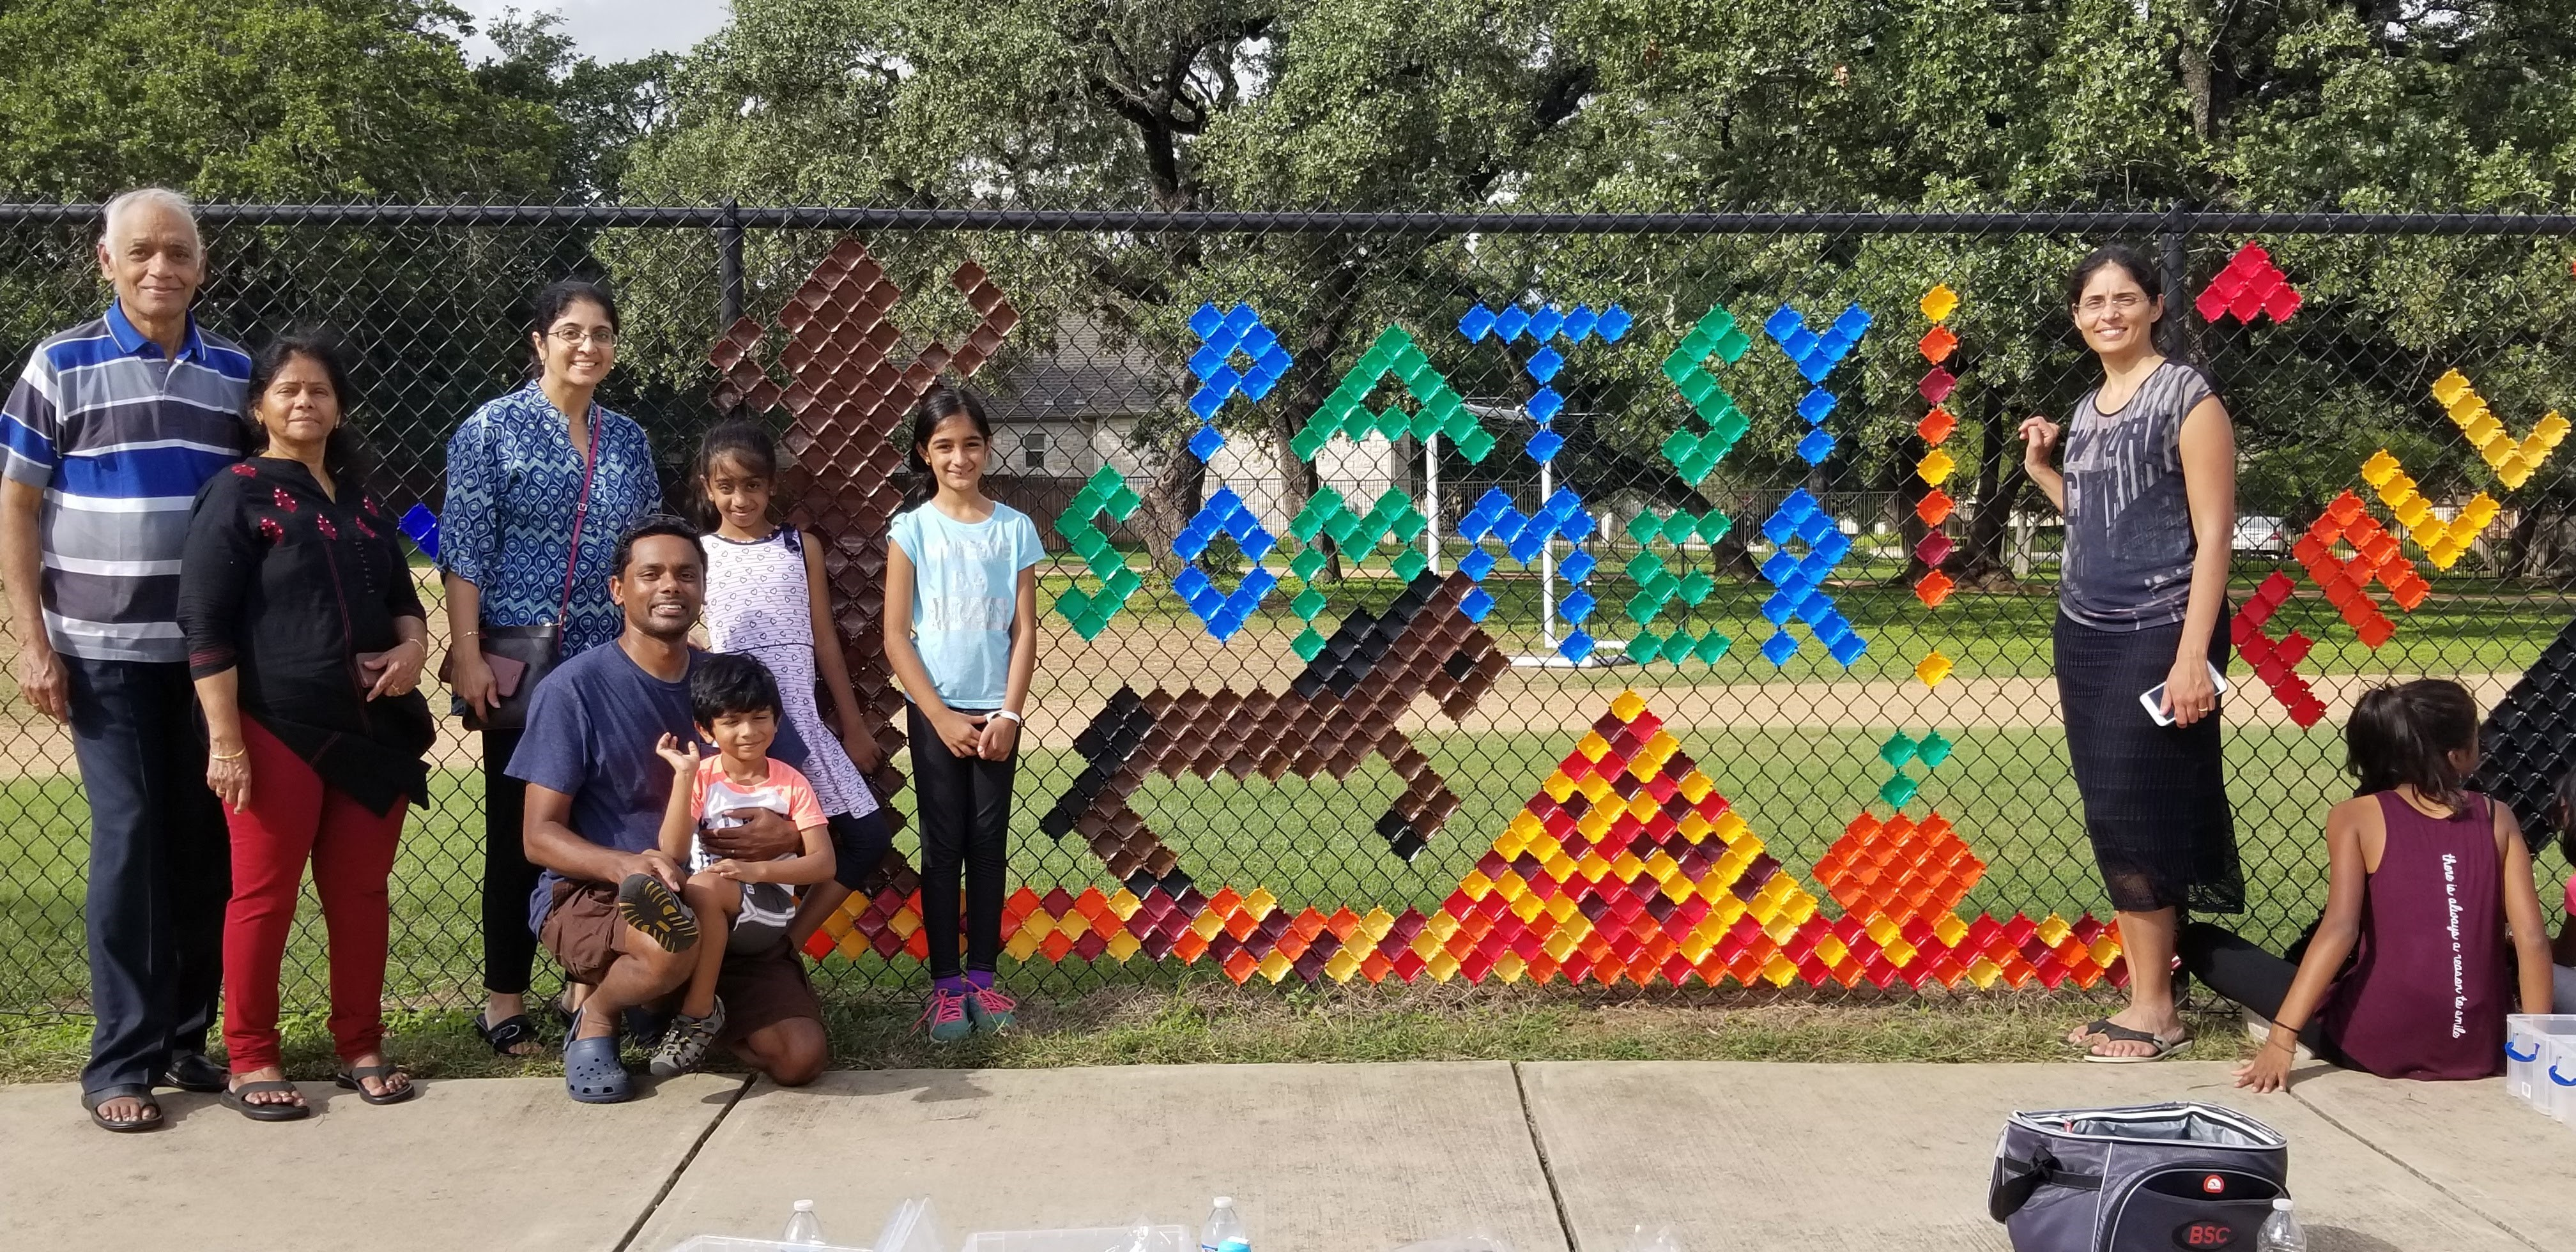 RoundRock ISD Makerspace Hosts Fence Art Content